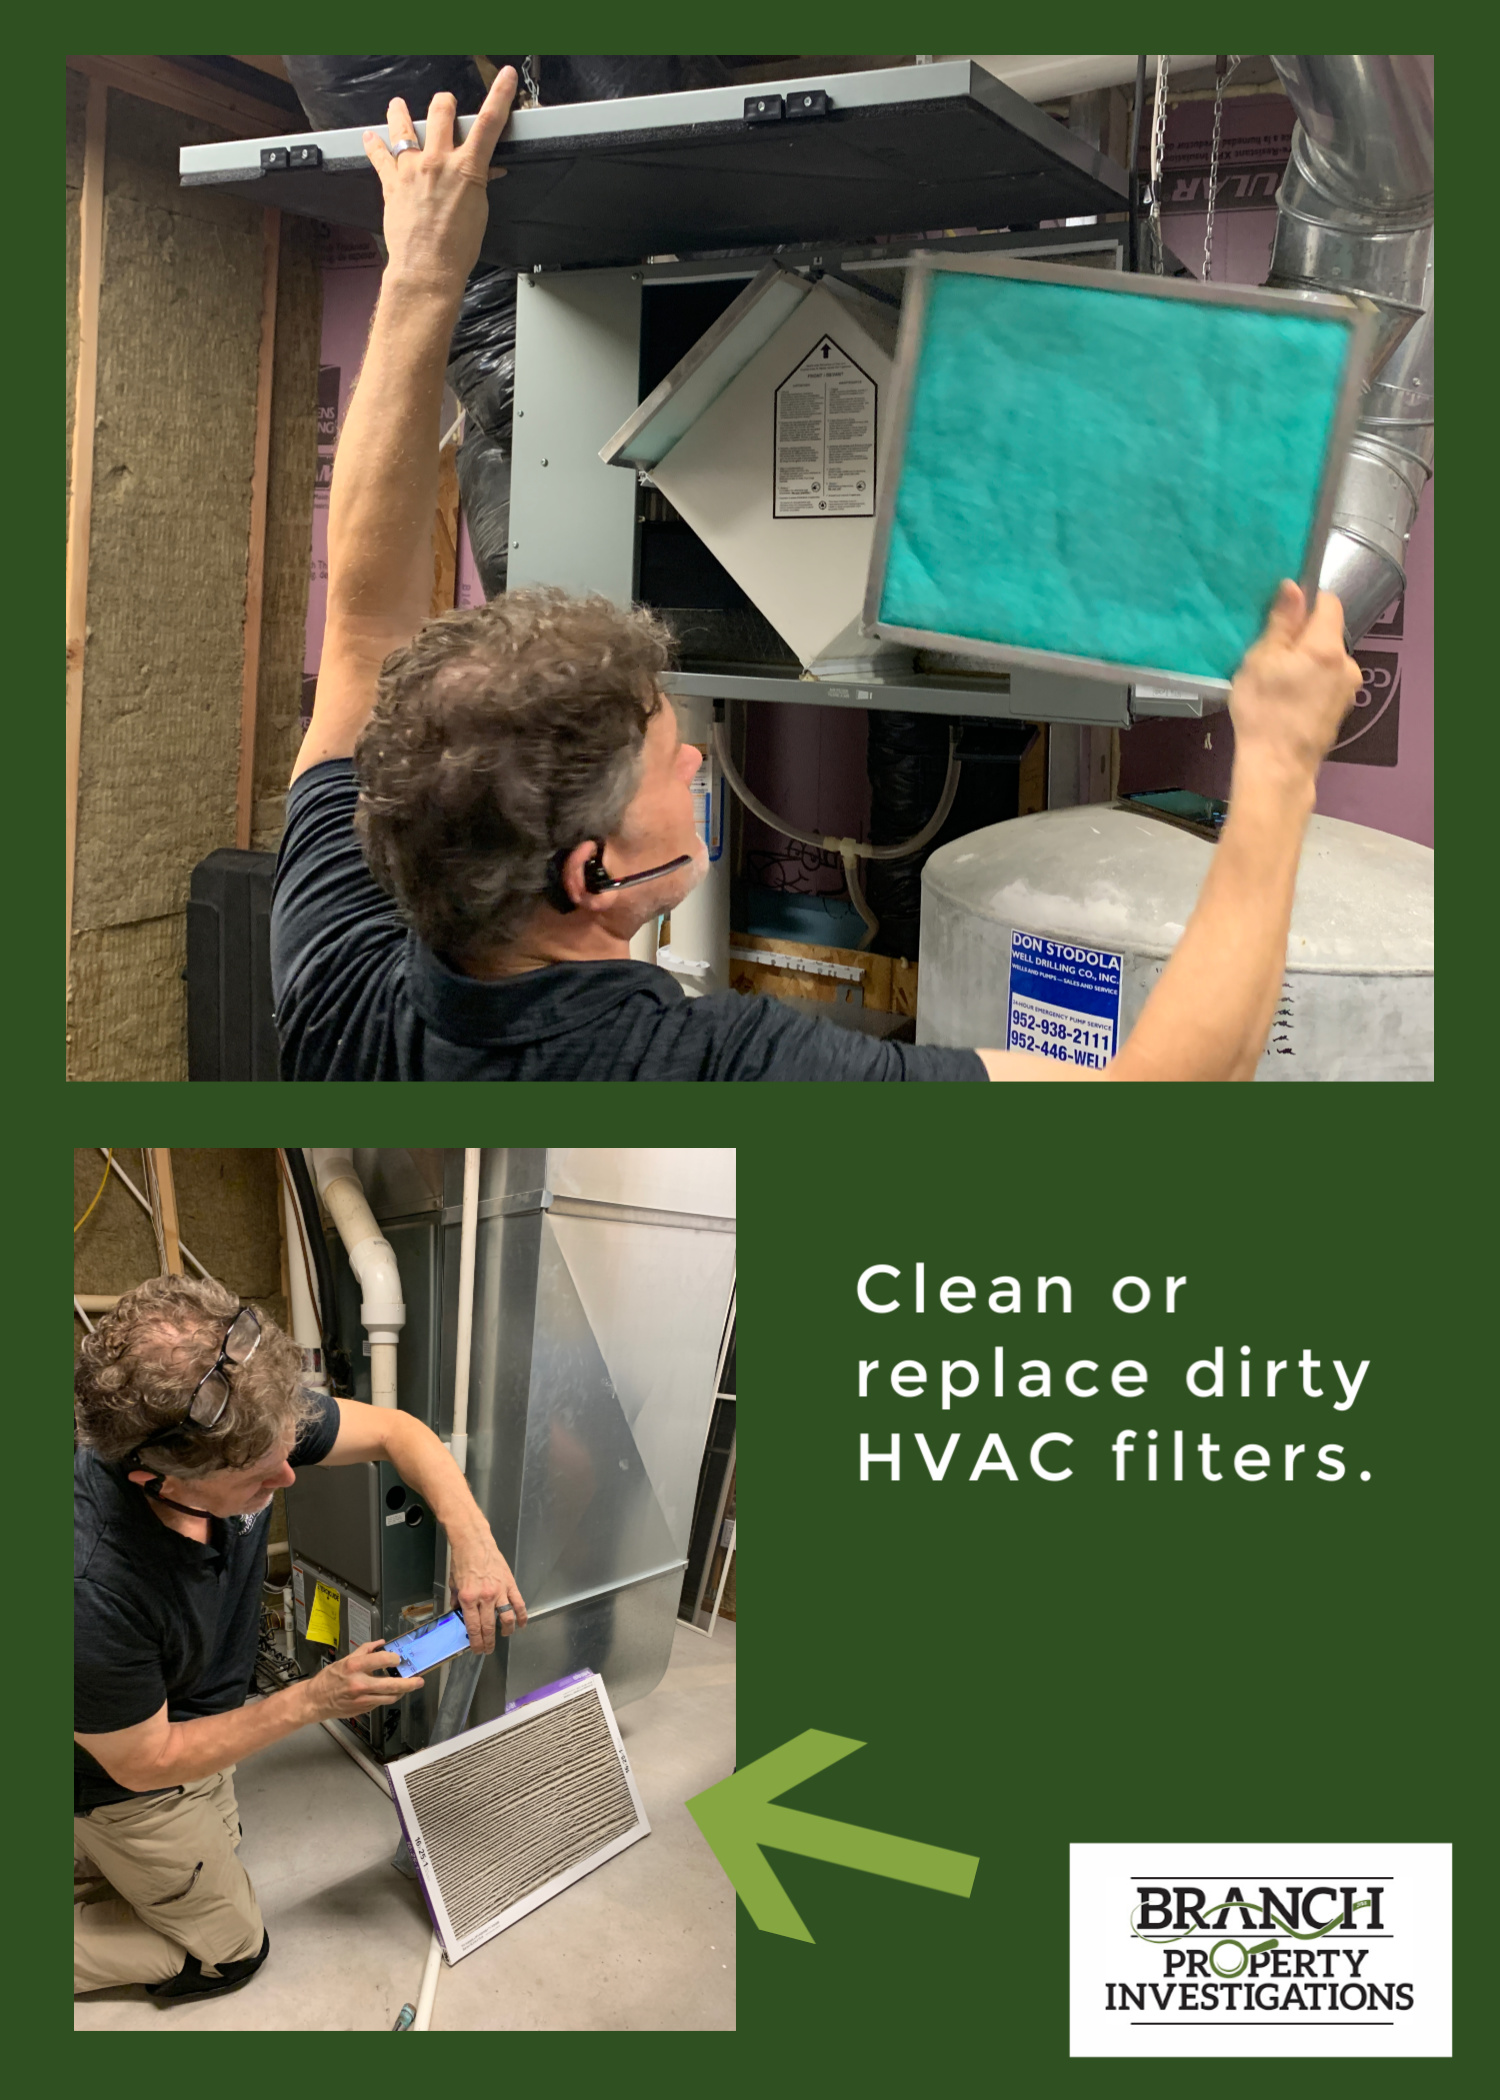 Clean or replace dirty furnace filter before home inspection